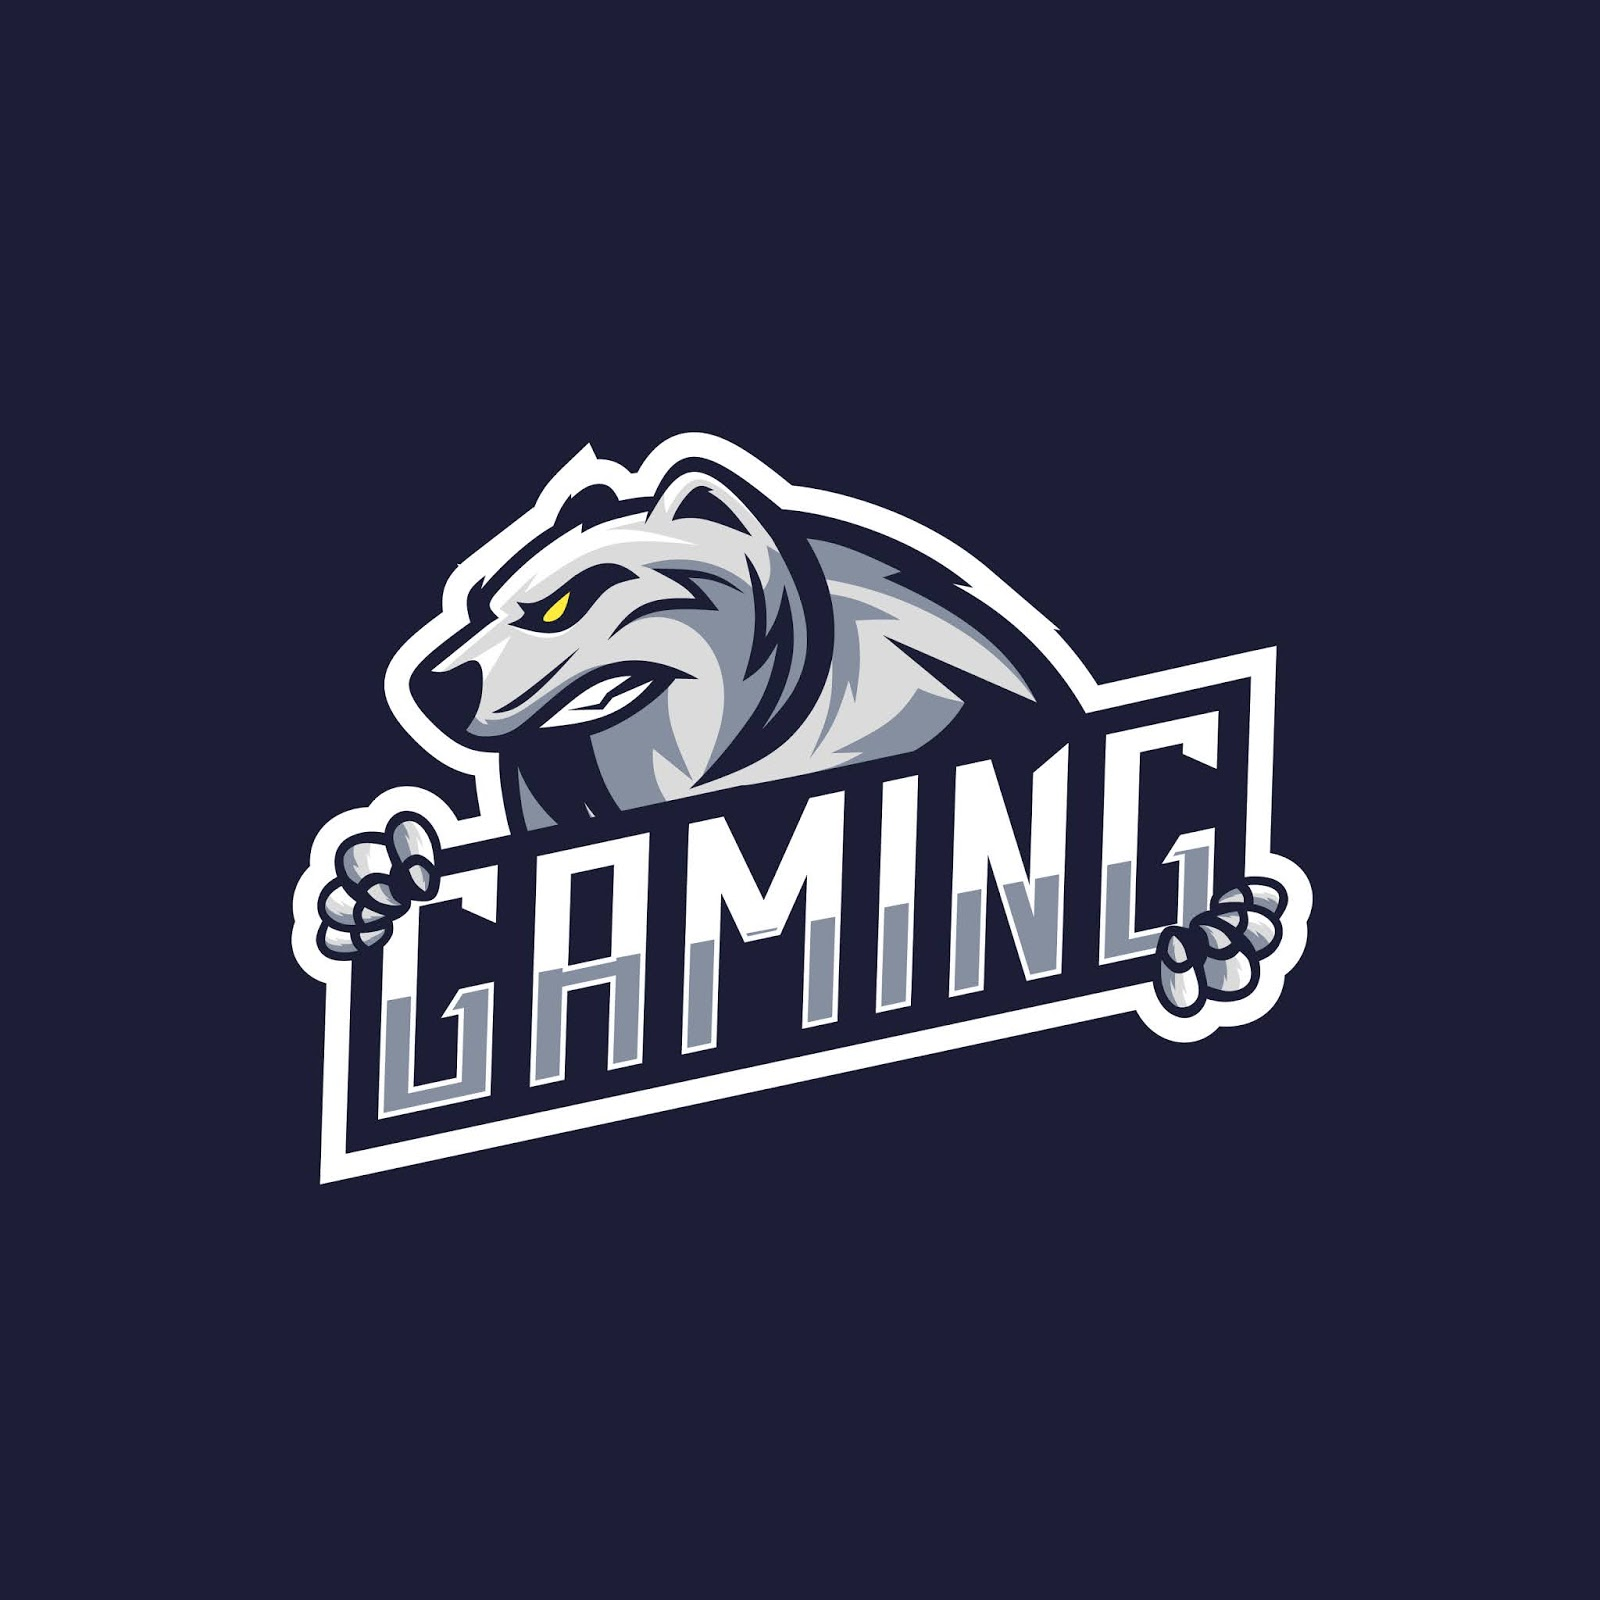 Awesome Polar Bear Logo Gaming Squad Free Download Vector CDR, AI, EPS and PNG Formats